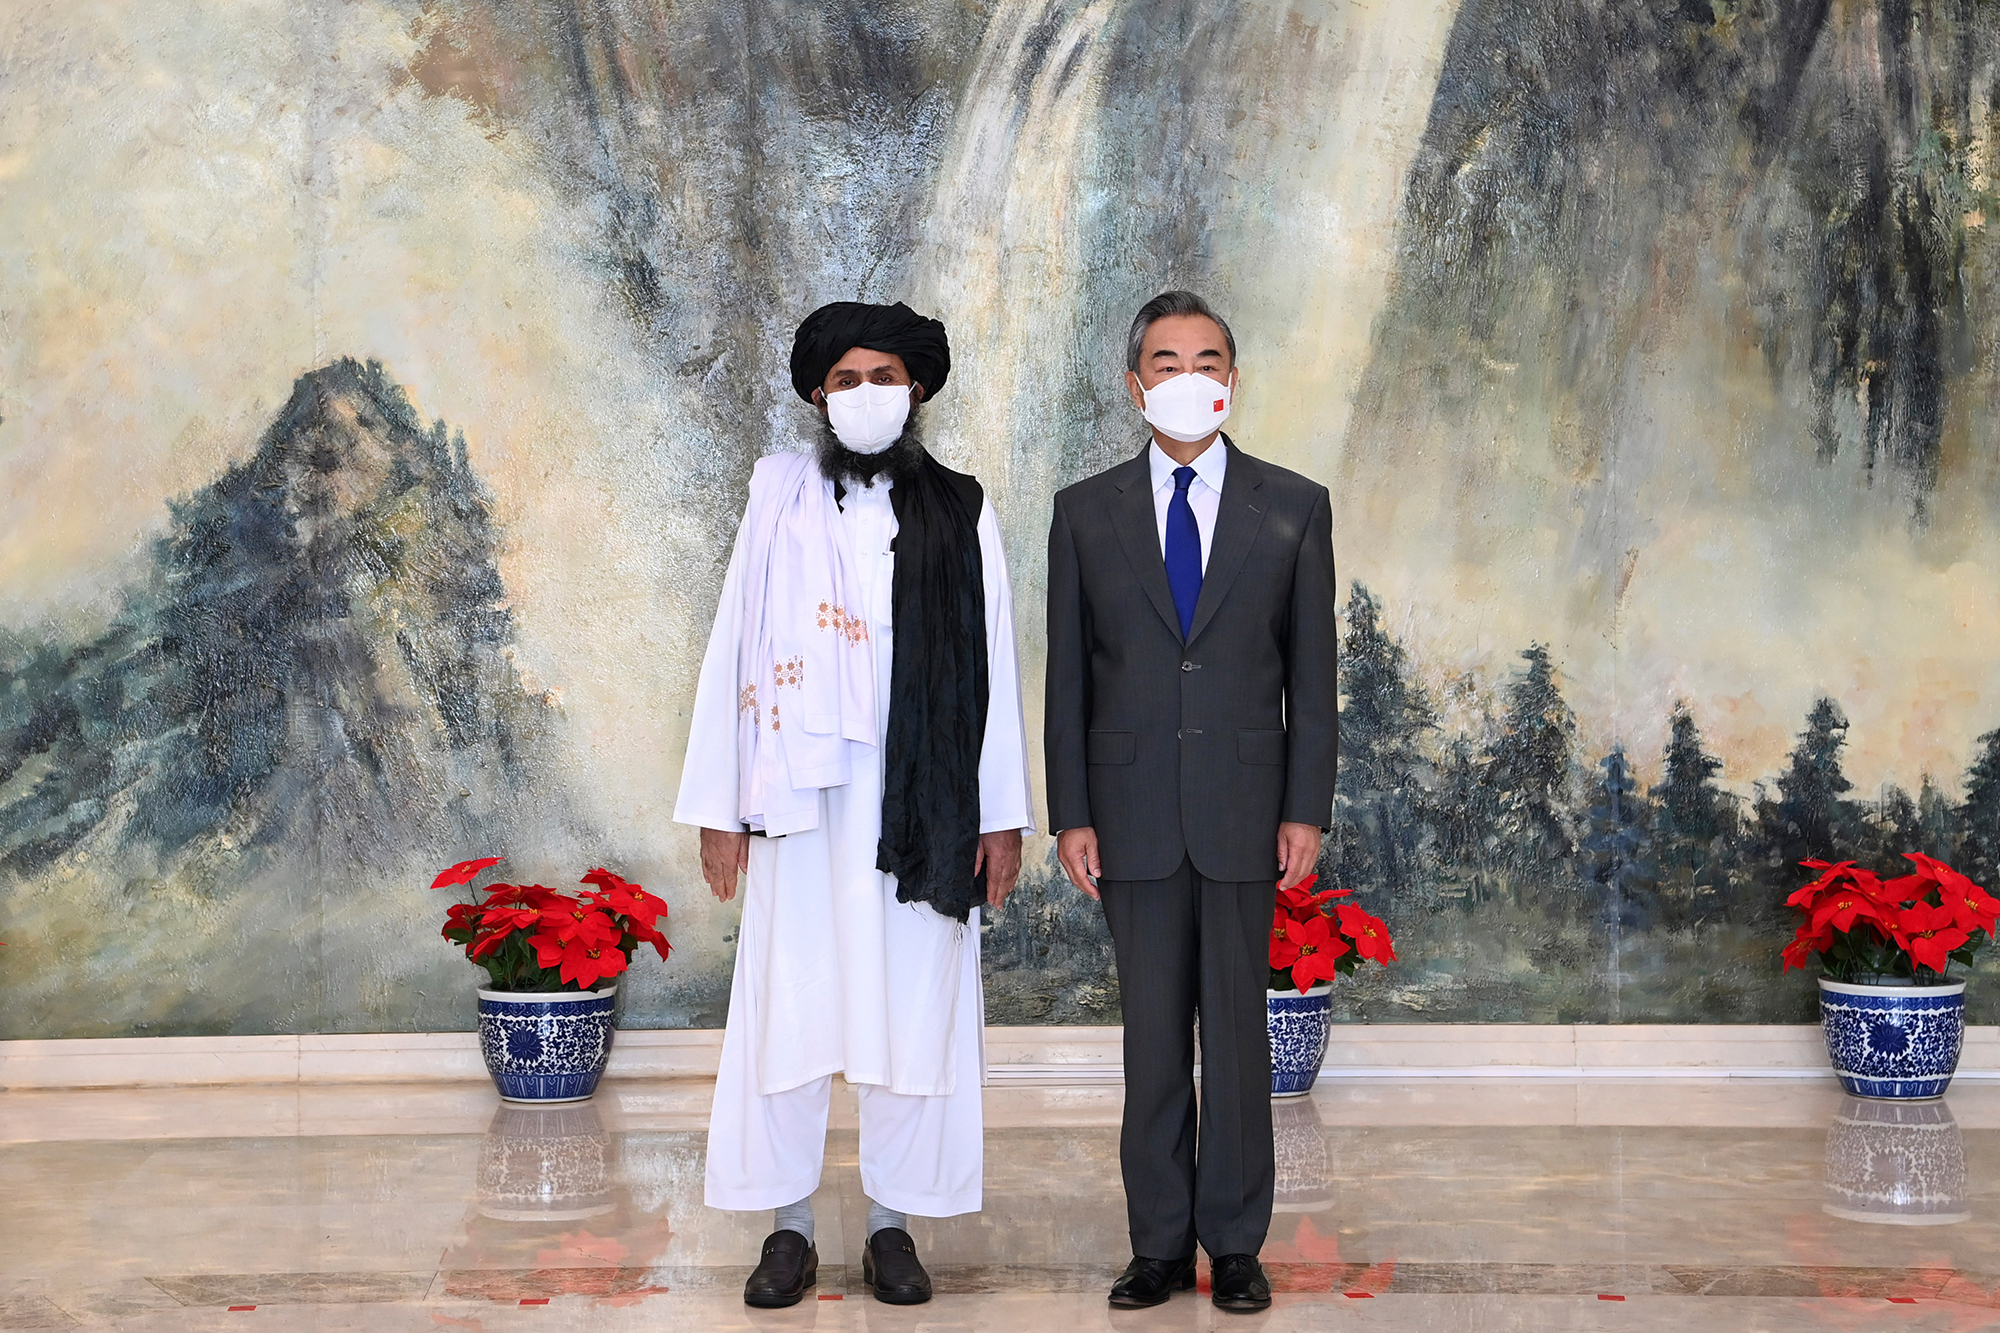 FILE - In this  July 28, 2021, file photo released by China's Xinhua News Agency, Taliban co-founder Mullah Abdul Ghani Baradar, left, and Chinese Foreign Minister Wang Yi pose for a photo during their meeting in Tianjin, China. China has expressed a willingness to hold talks with the U.S. to promote a soft landing in Afghanistan, while heavily criticizing Washington and again demanding that the Biden administration halt its attacks on China. (Li Ran/Xinhua via AP, File)